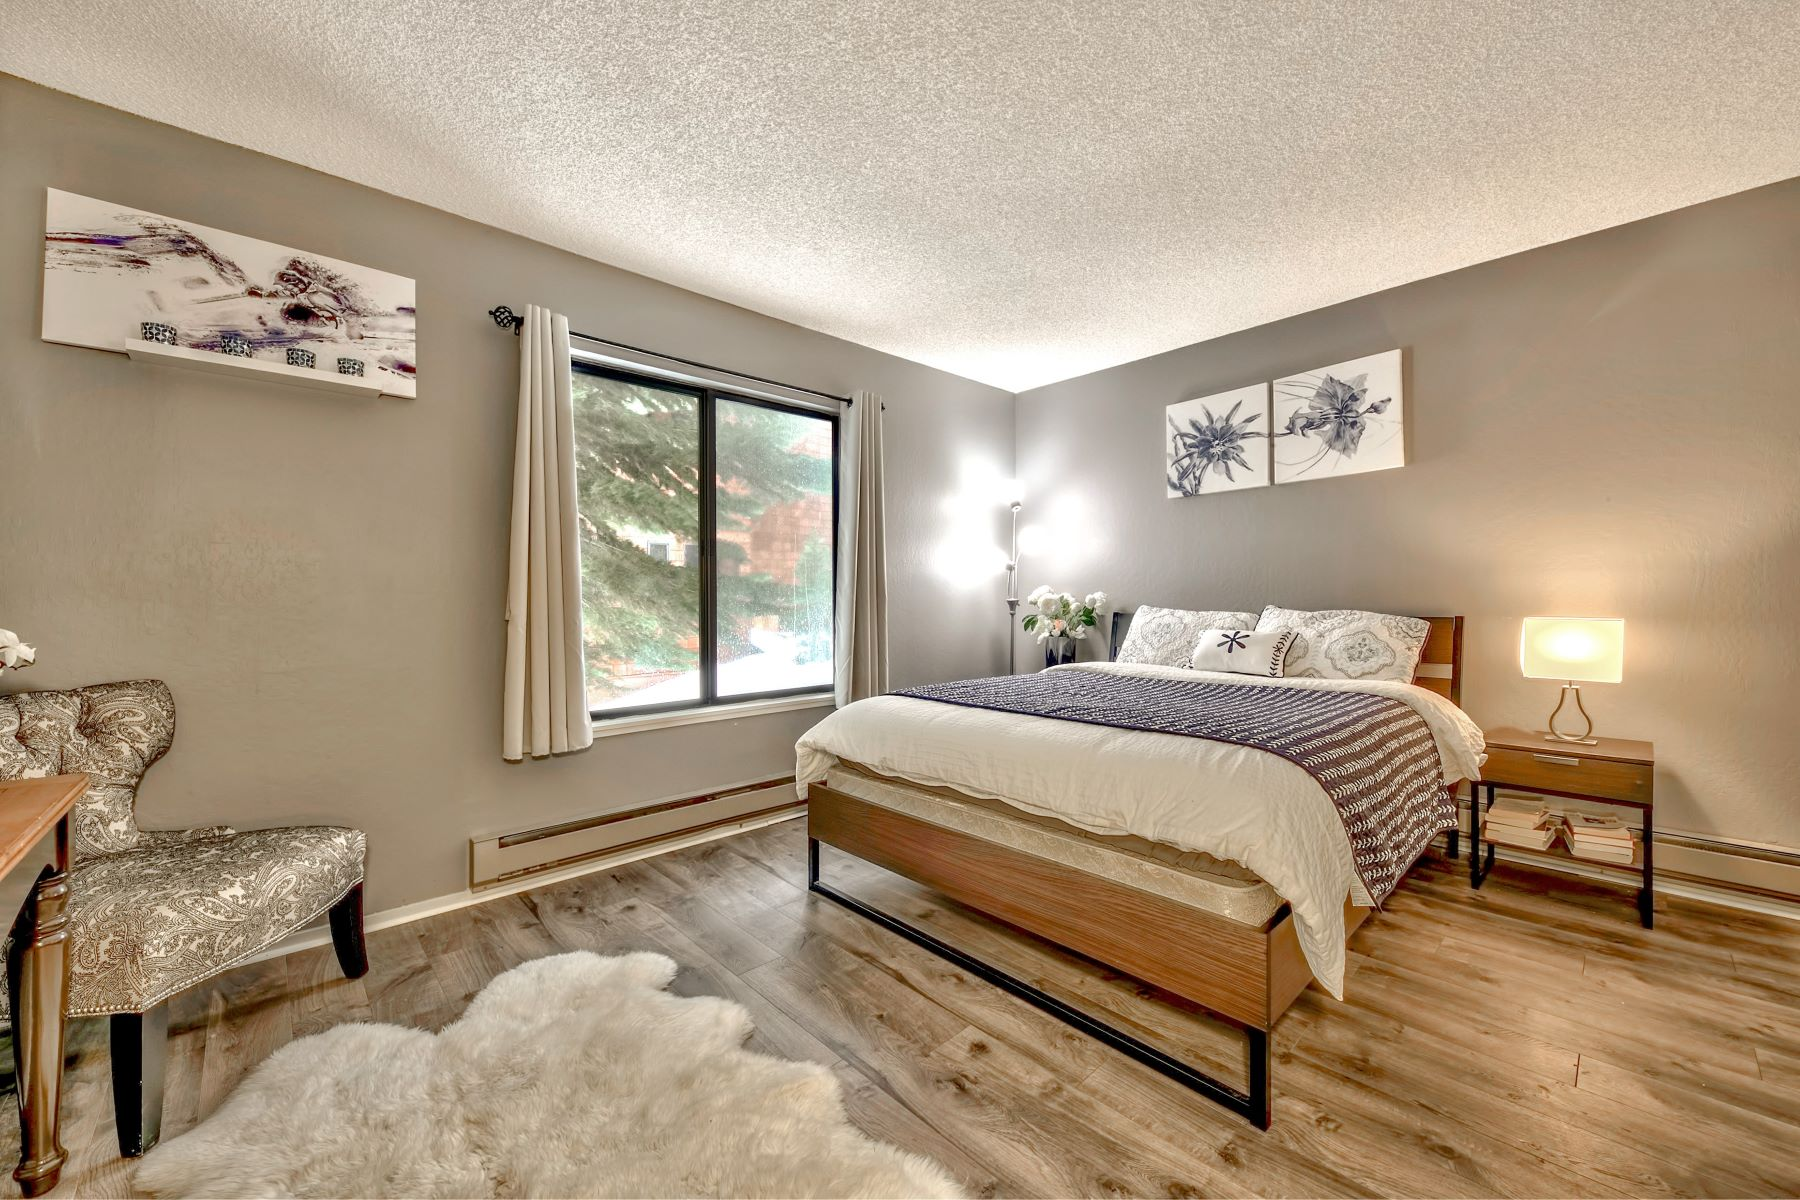 Additional photo for property listing at 11667 Snowpeak Way #523  Truckee California 96161 11667 Snowpeak Way  #523 Truckee, California 96161 United States